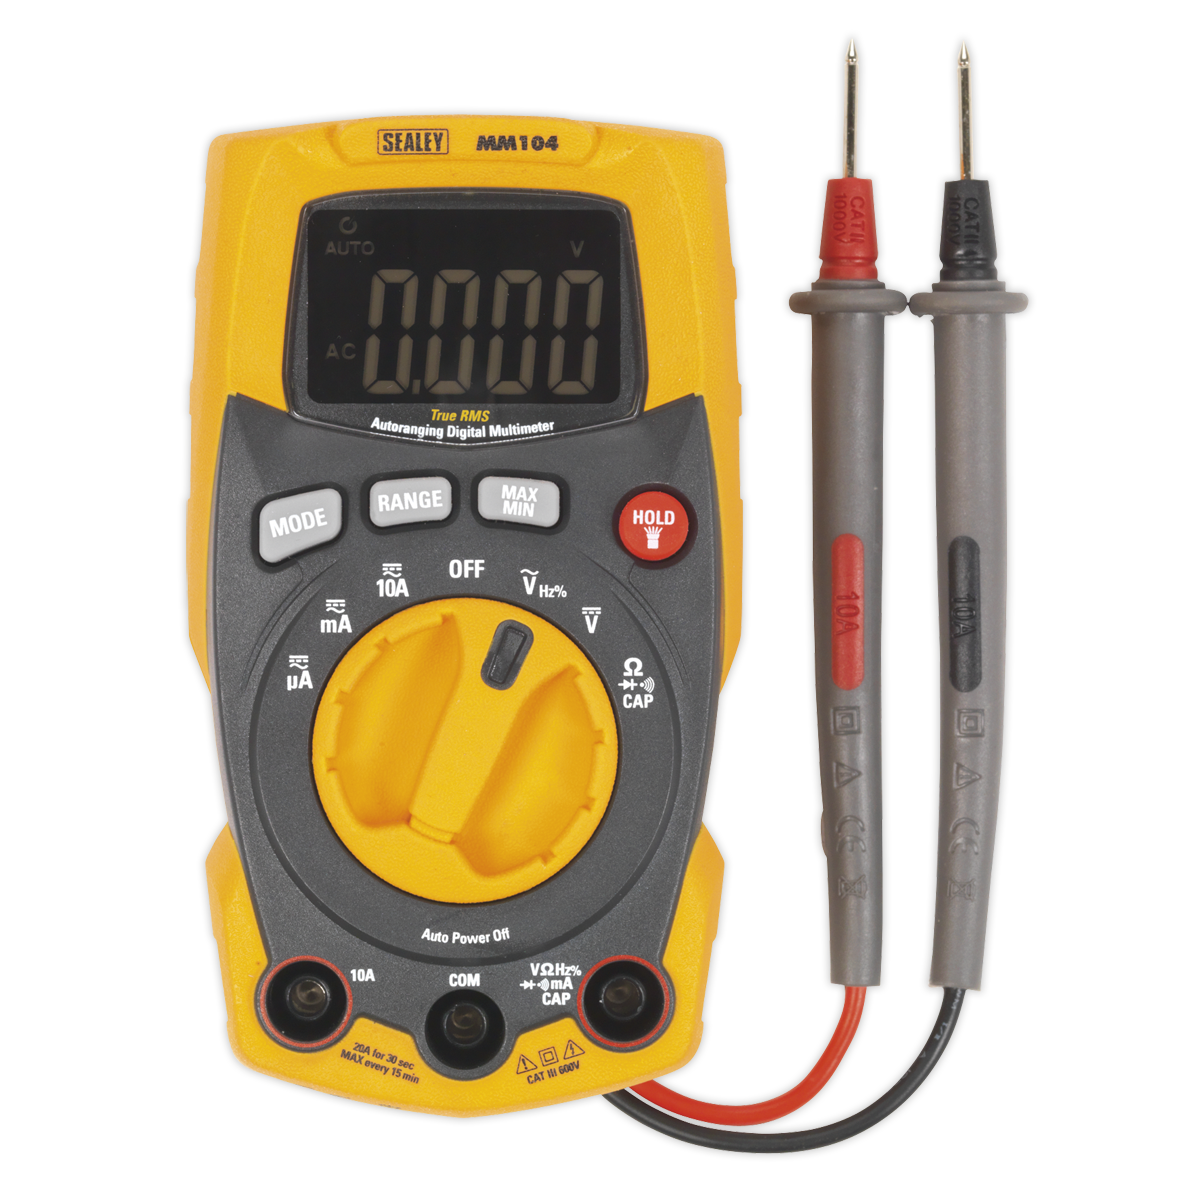 - Professional Auto-Ranging Digital Multimeter SEALEY MM104 by Sealey